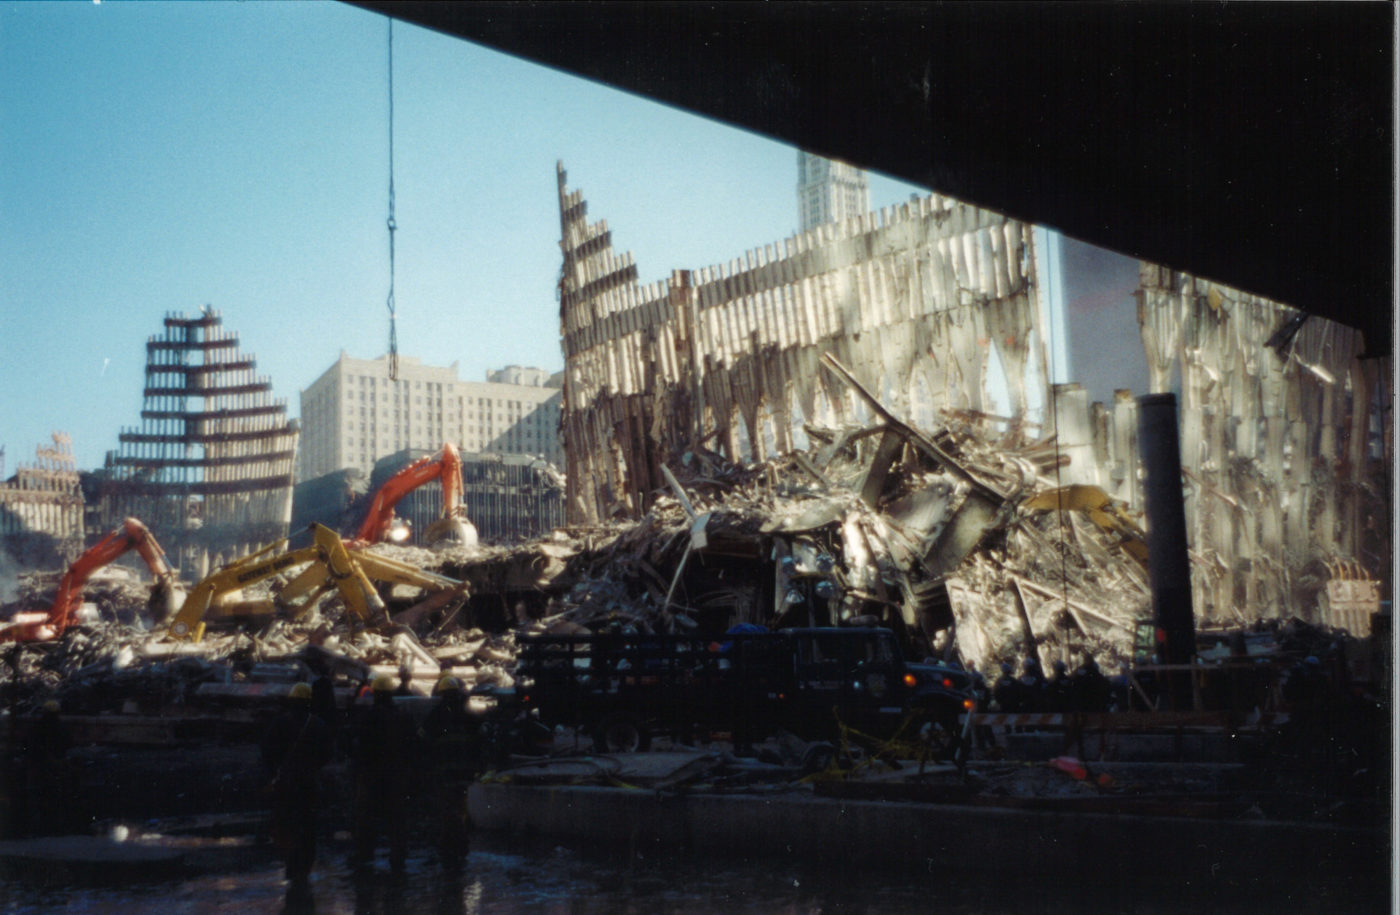 Exoskeleton of WTC 1 and 2 in Debris